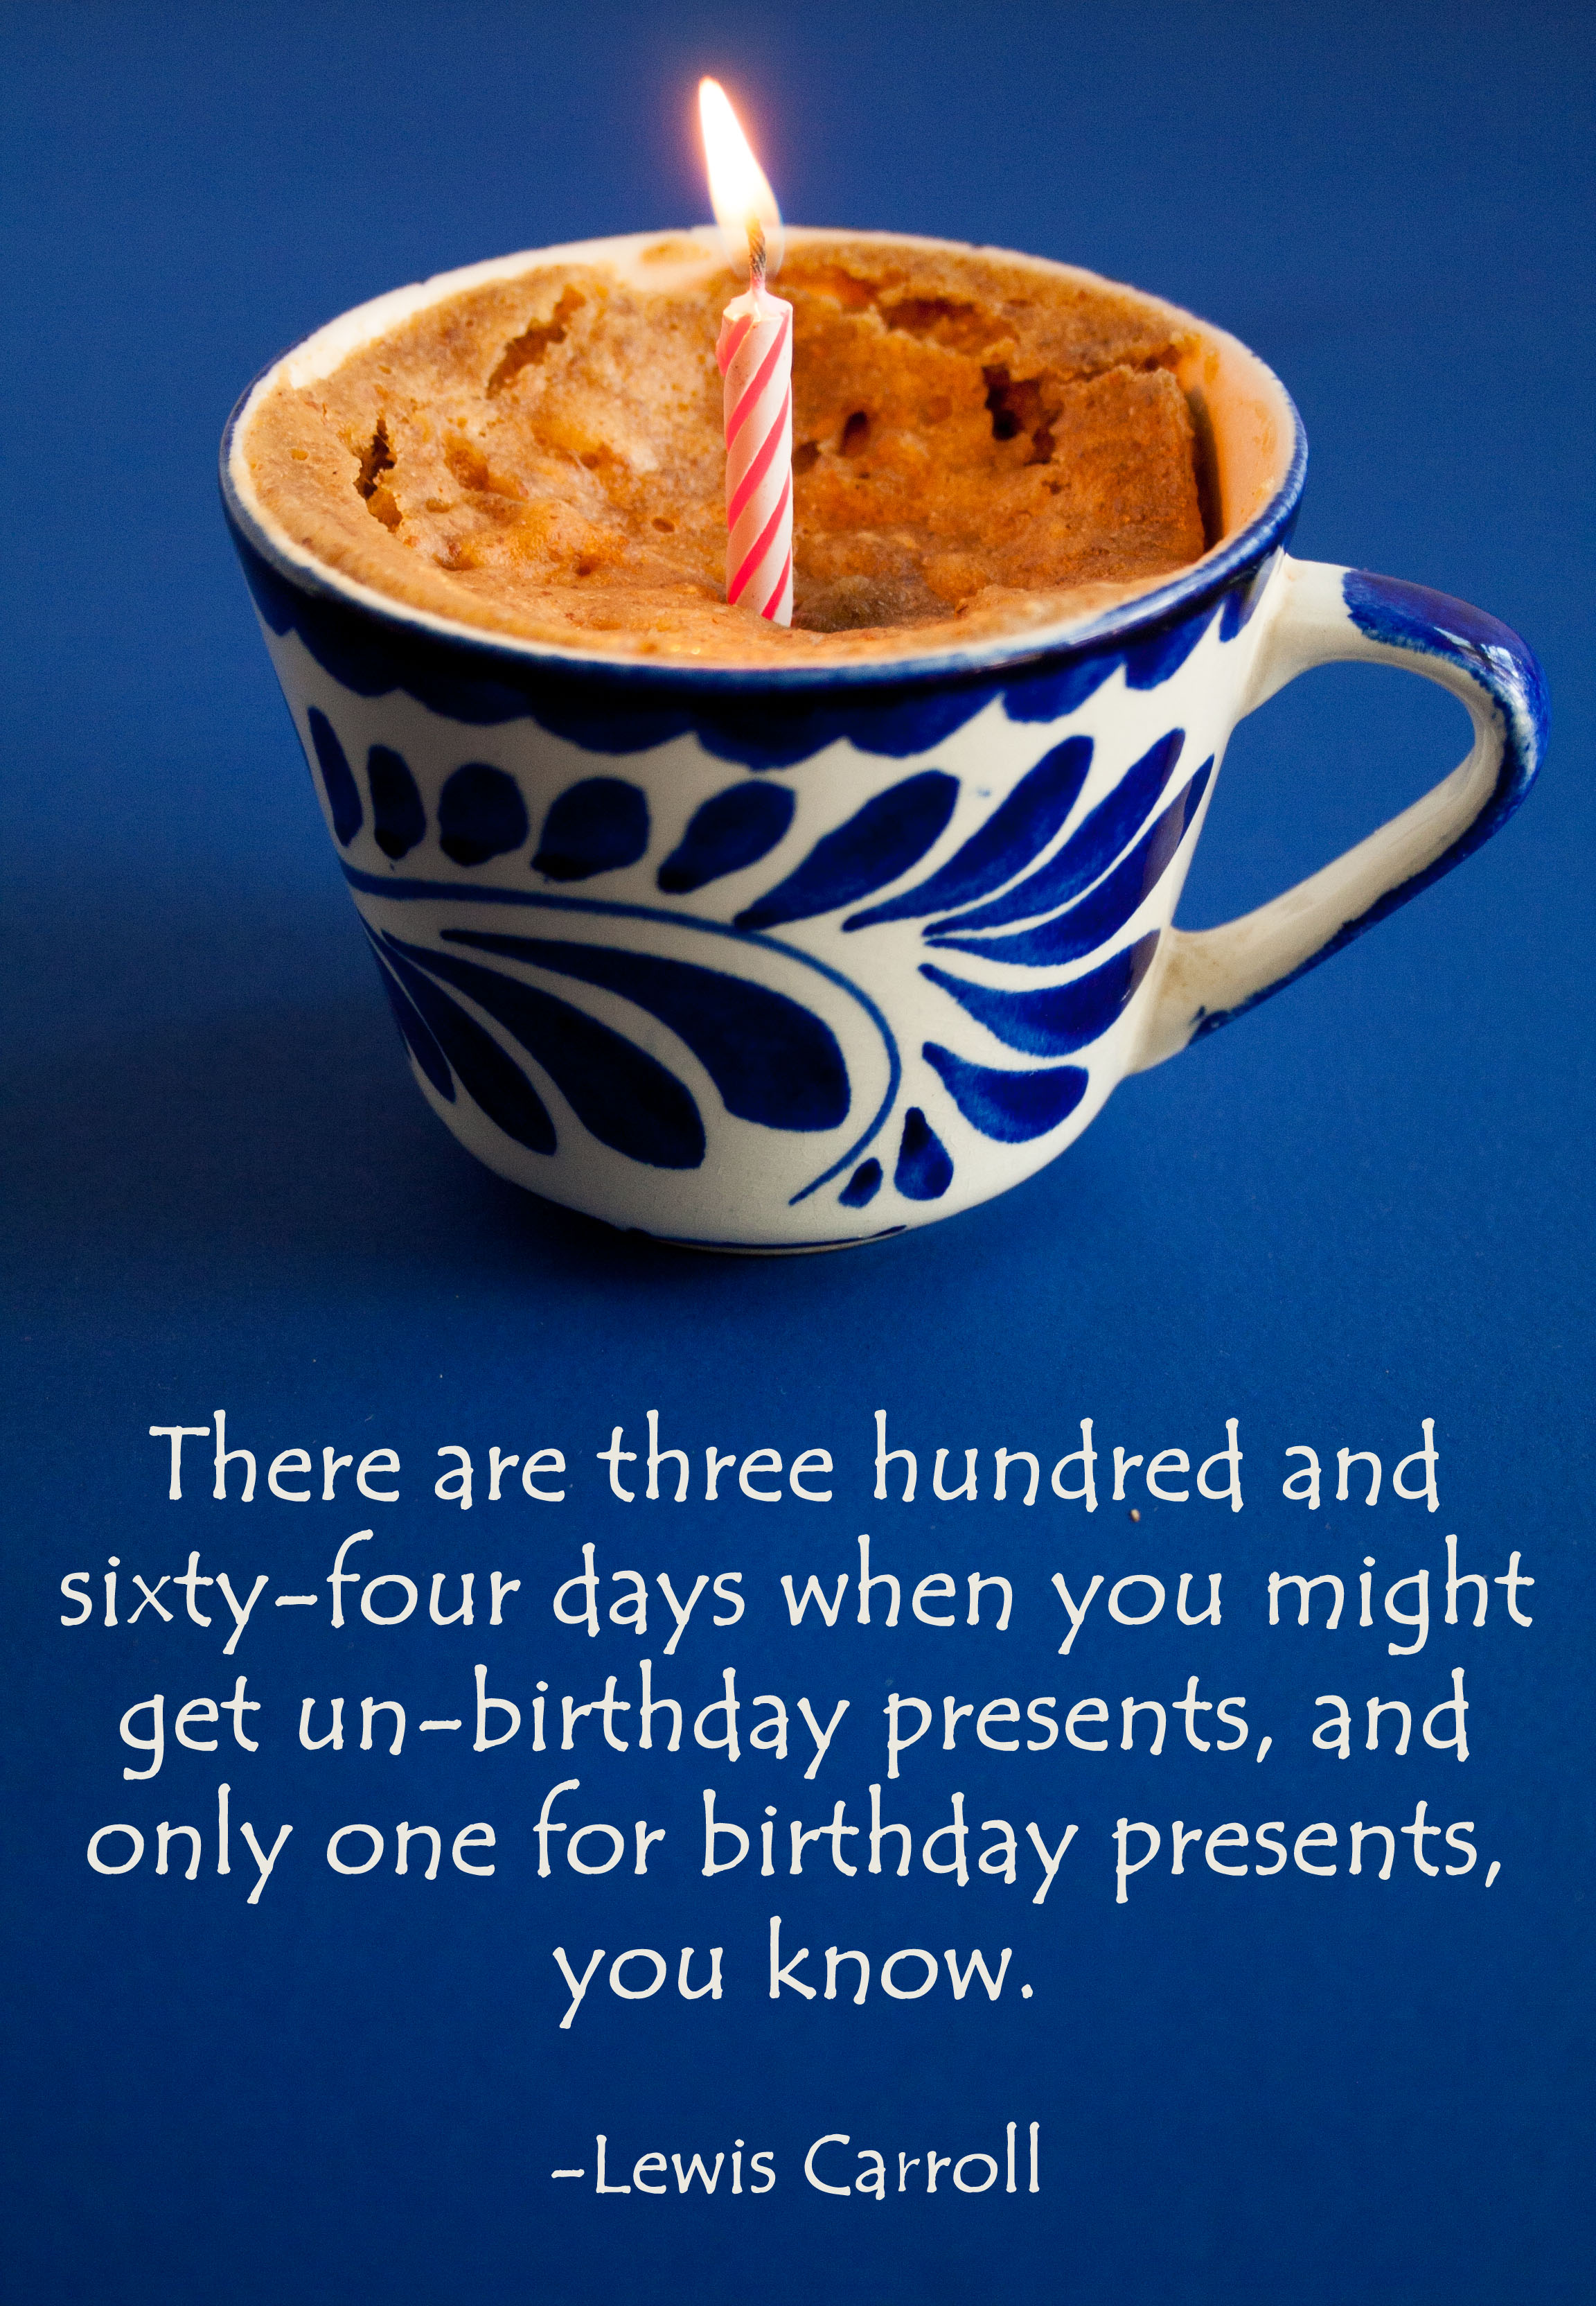 """""""There are three hundred and sixty-four days when you might get un-birthday presents, and only one for birthday presents, you know."""" - Lewis Carroll quote written below a photo of a mug cake with a lit candle in it."""